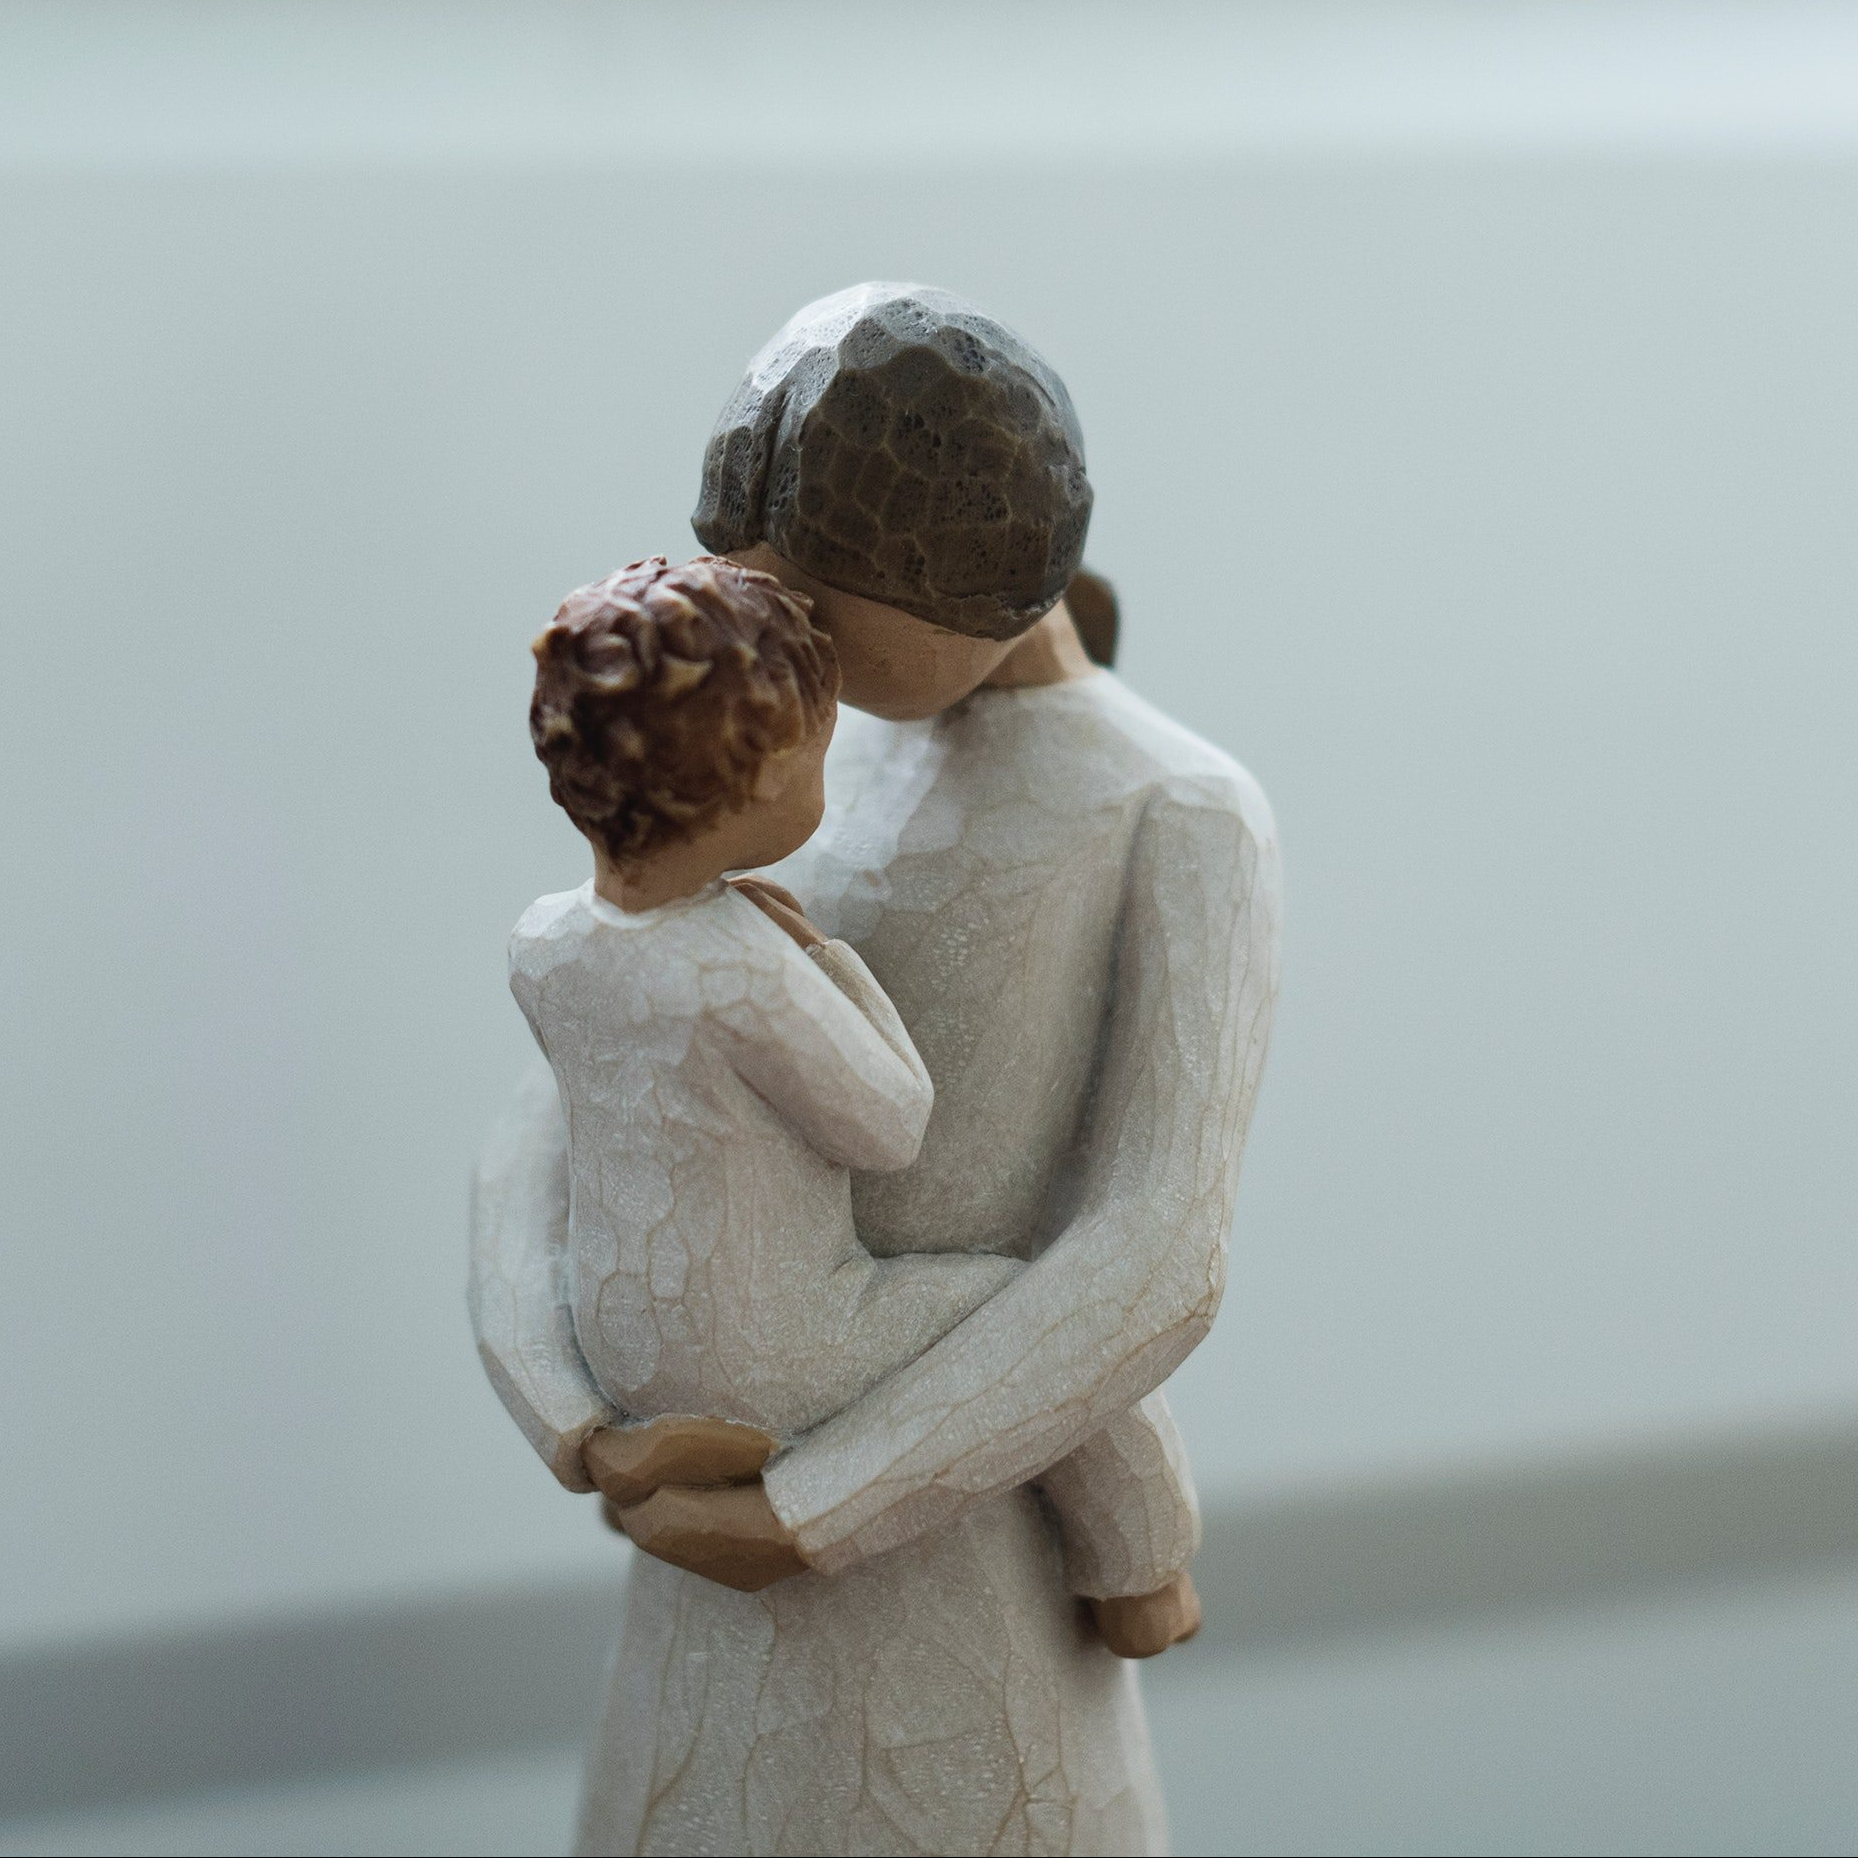 decor-depth-of-field-figurine-704147